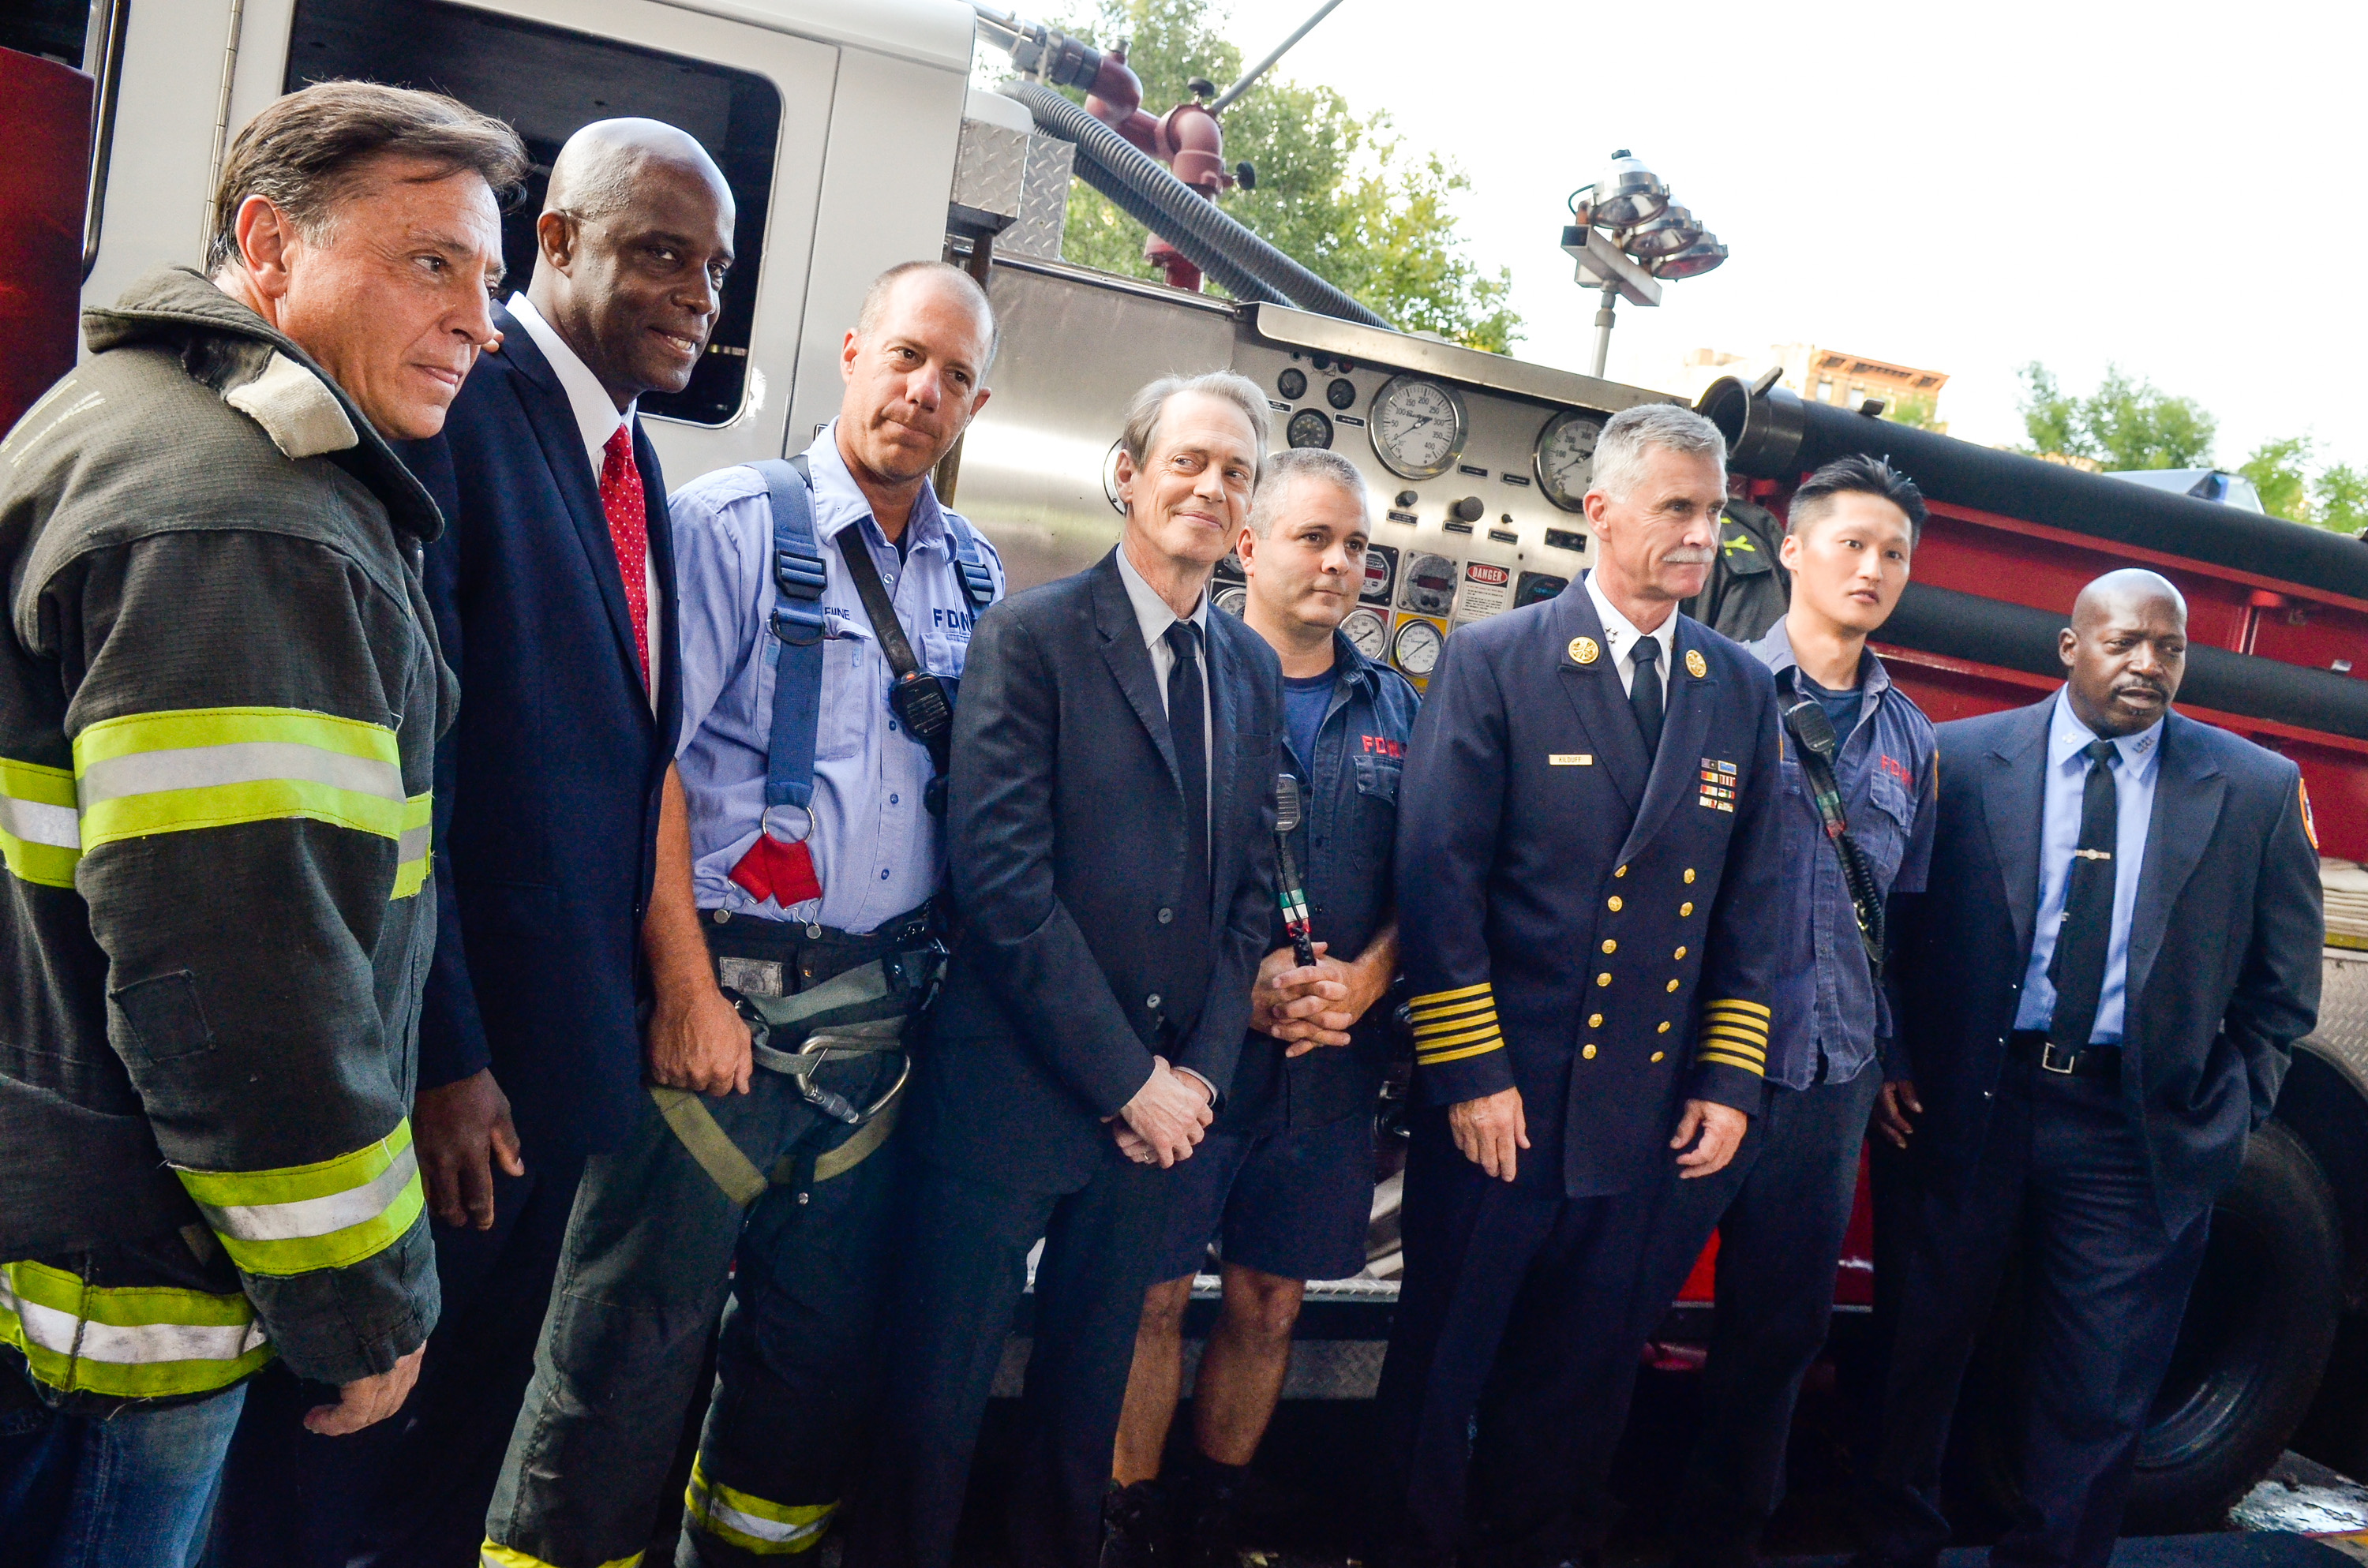 """A Good Job: Stories Of The FDNY"" New York Premiere"